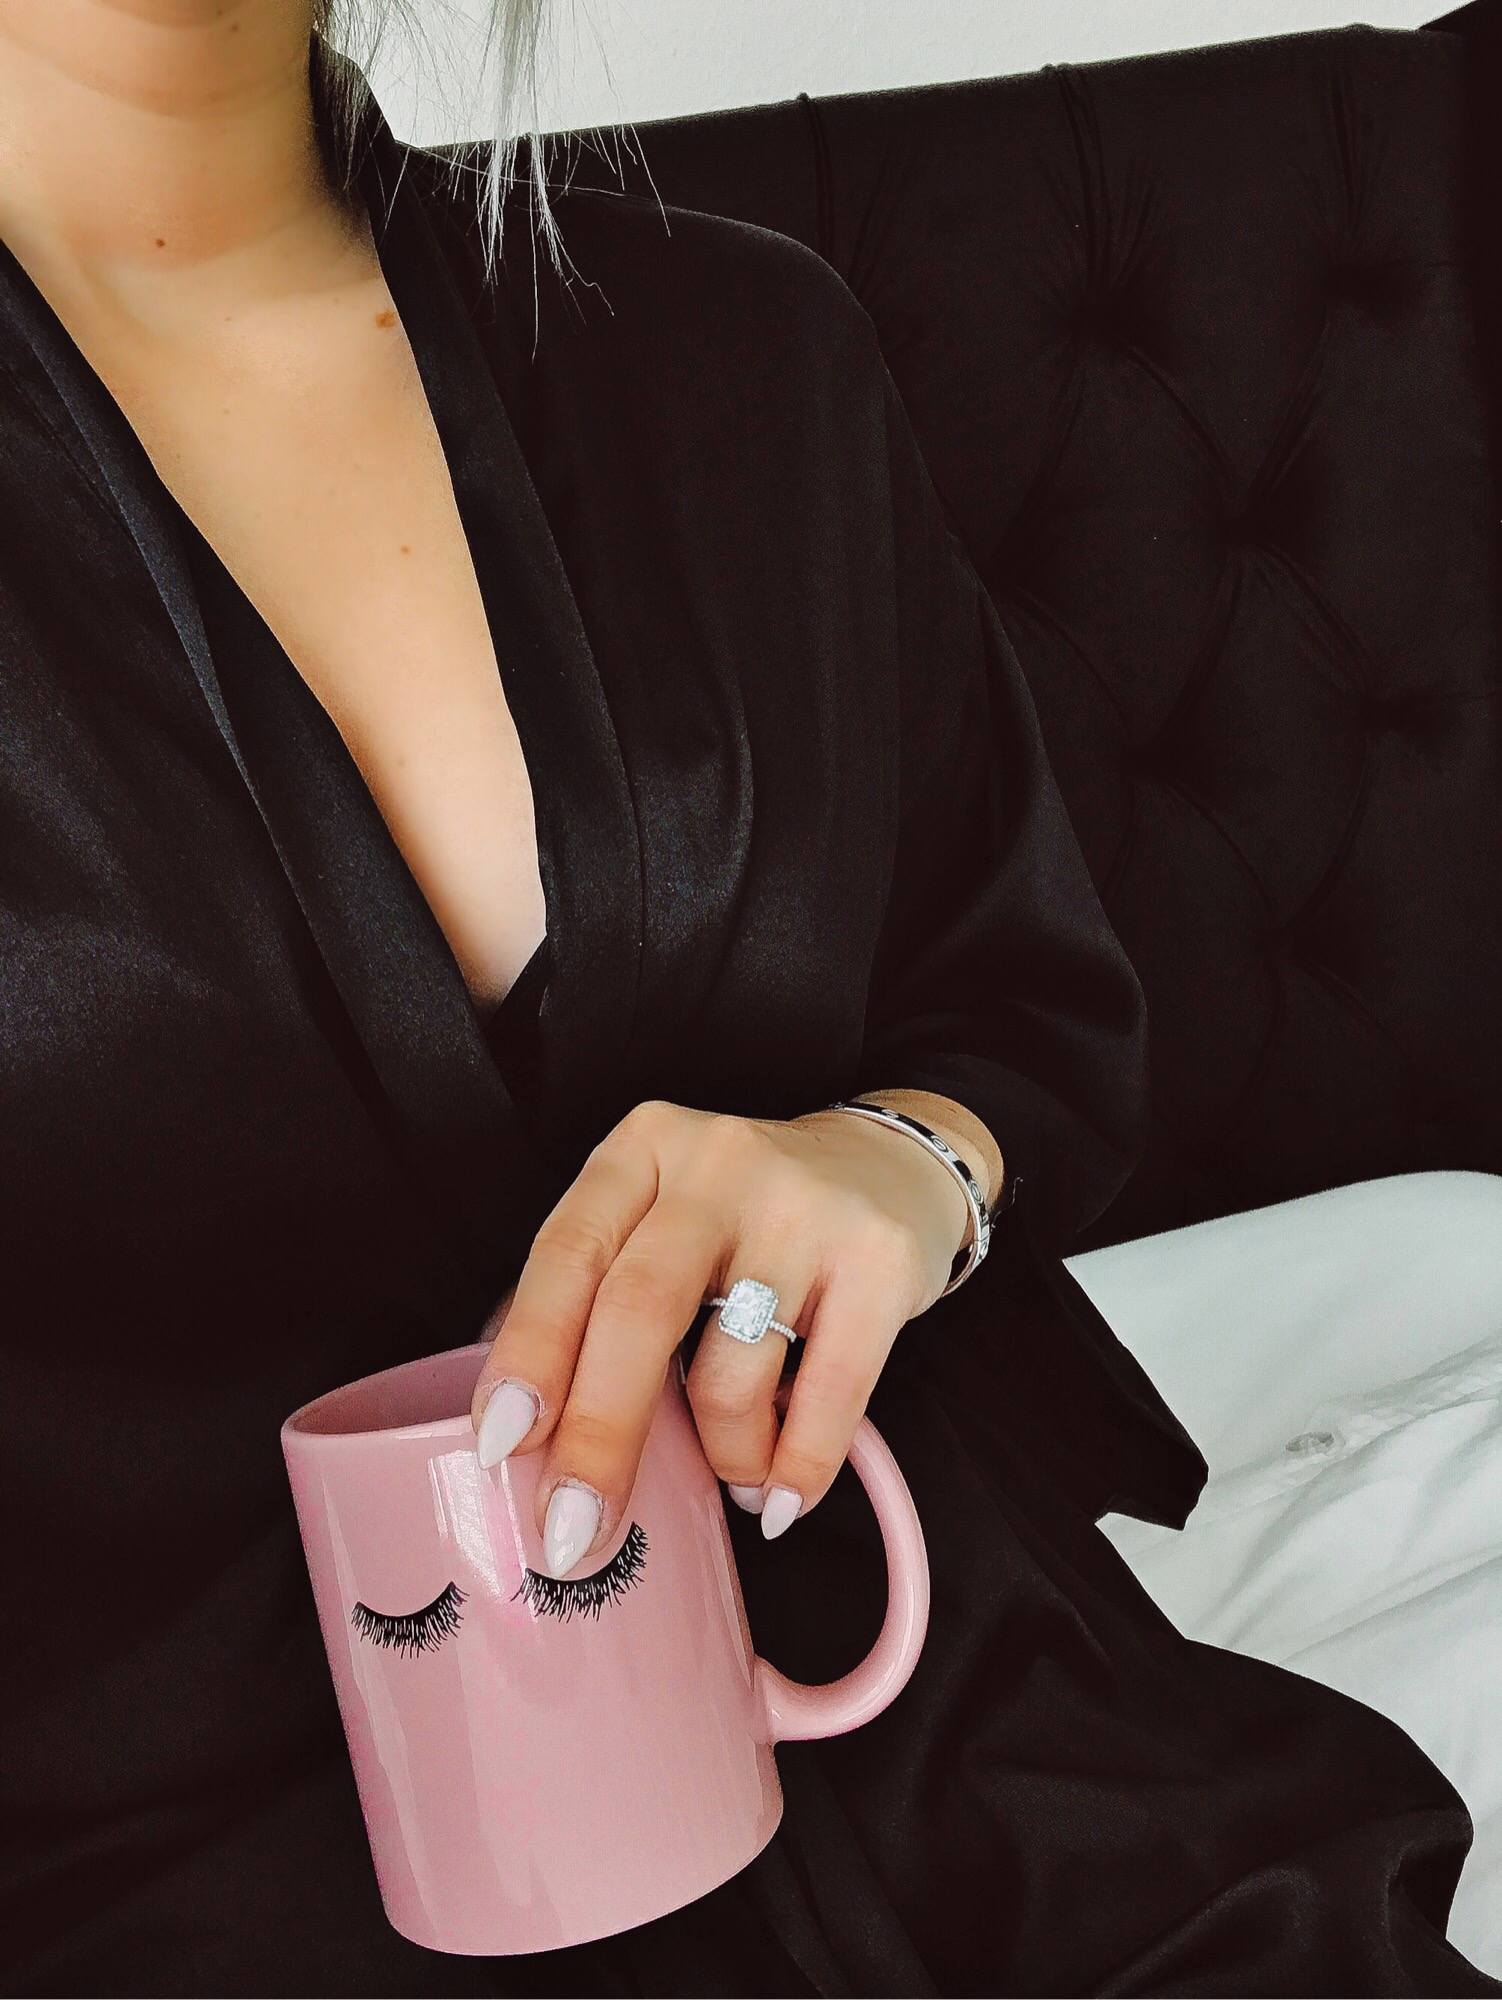 Blondie in the City Engagement Ring | IG: @HayleyLarue | Radiant Cut Diamond | Radiant Cut Engagement Ring | Coffee & Diamonds